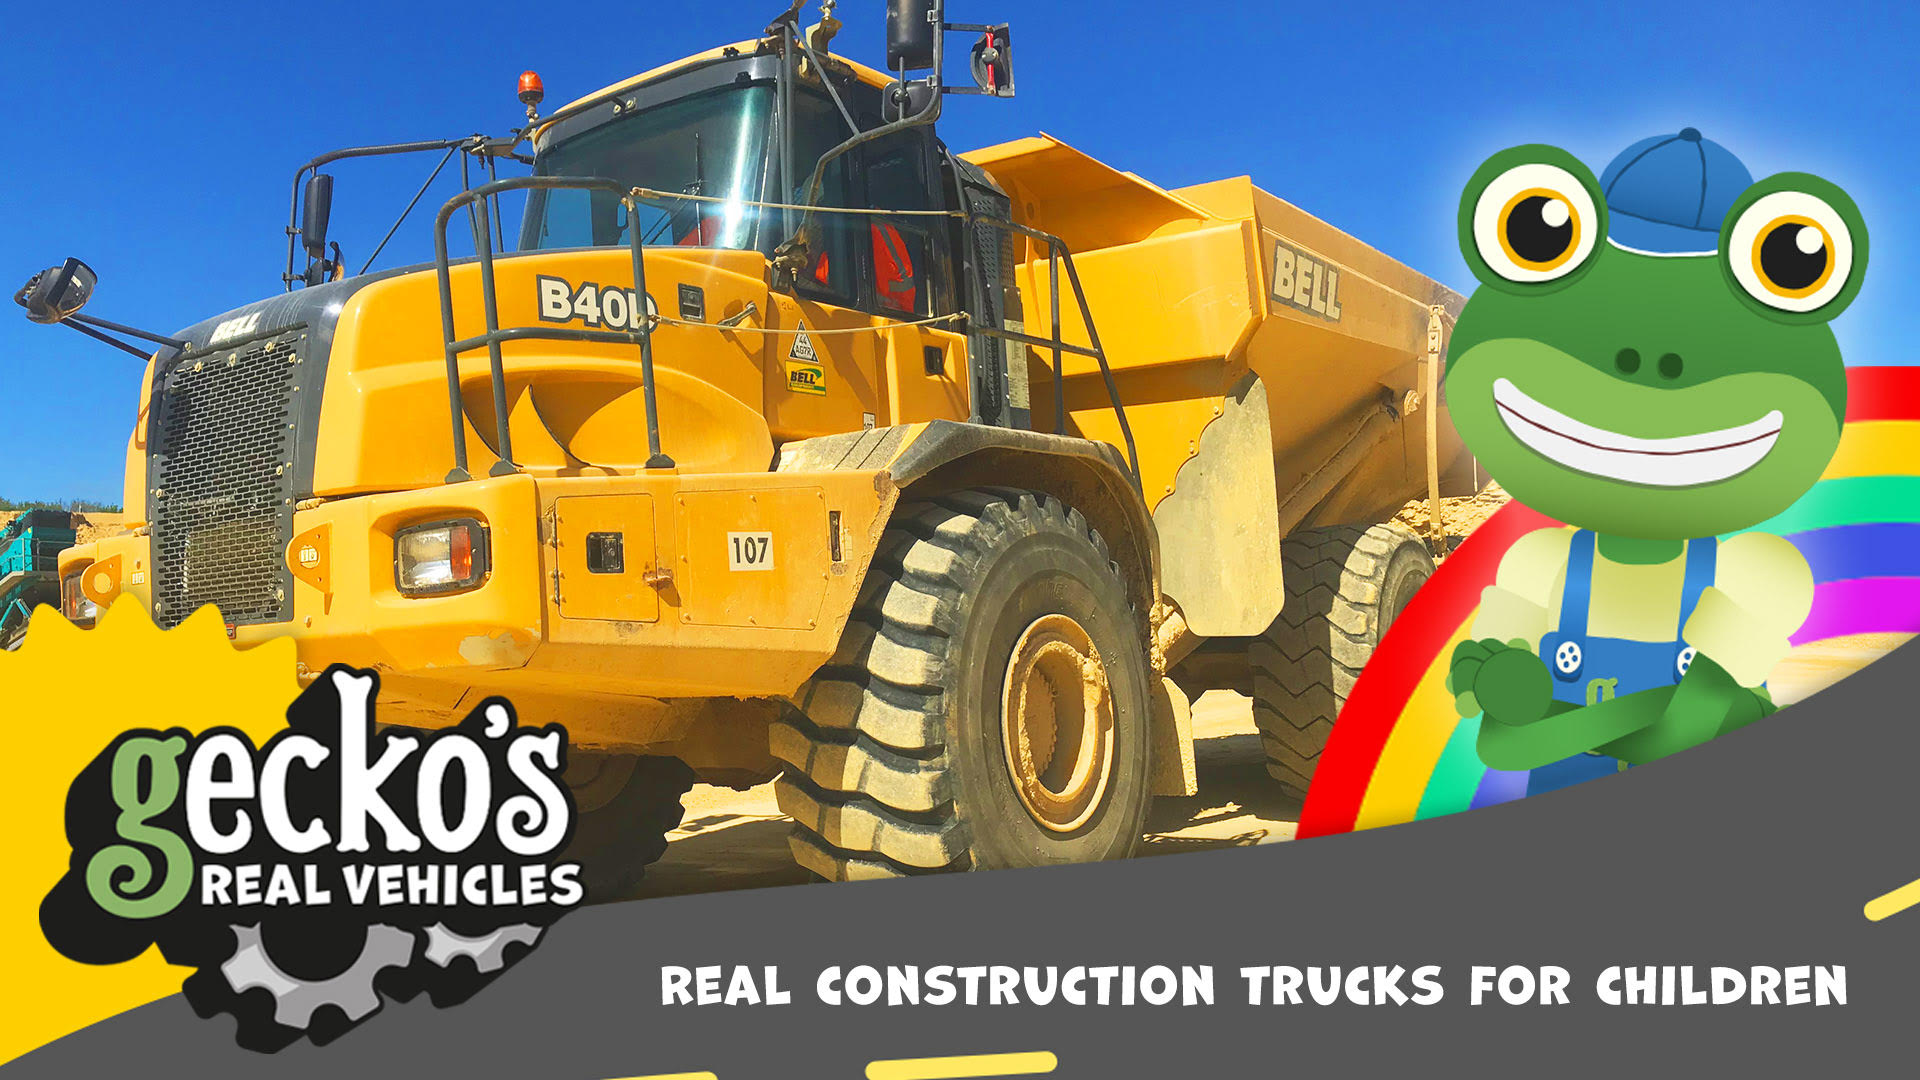 Gecko's Garage Real Vehicles Volume 2 (Trucks, Construction and Large Vehicles)